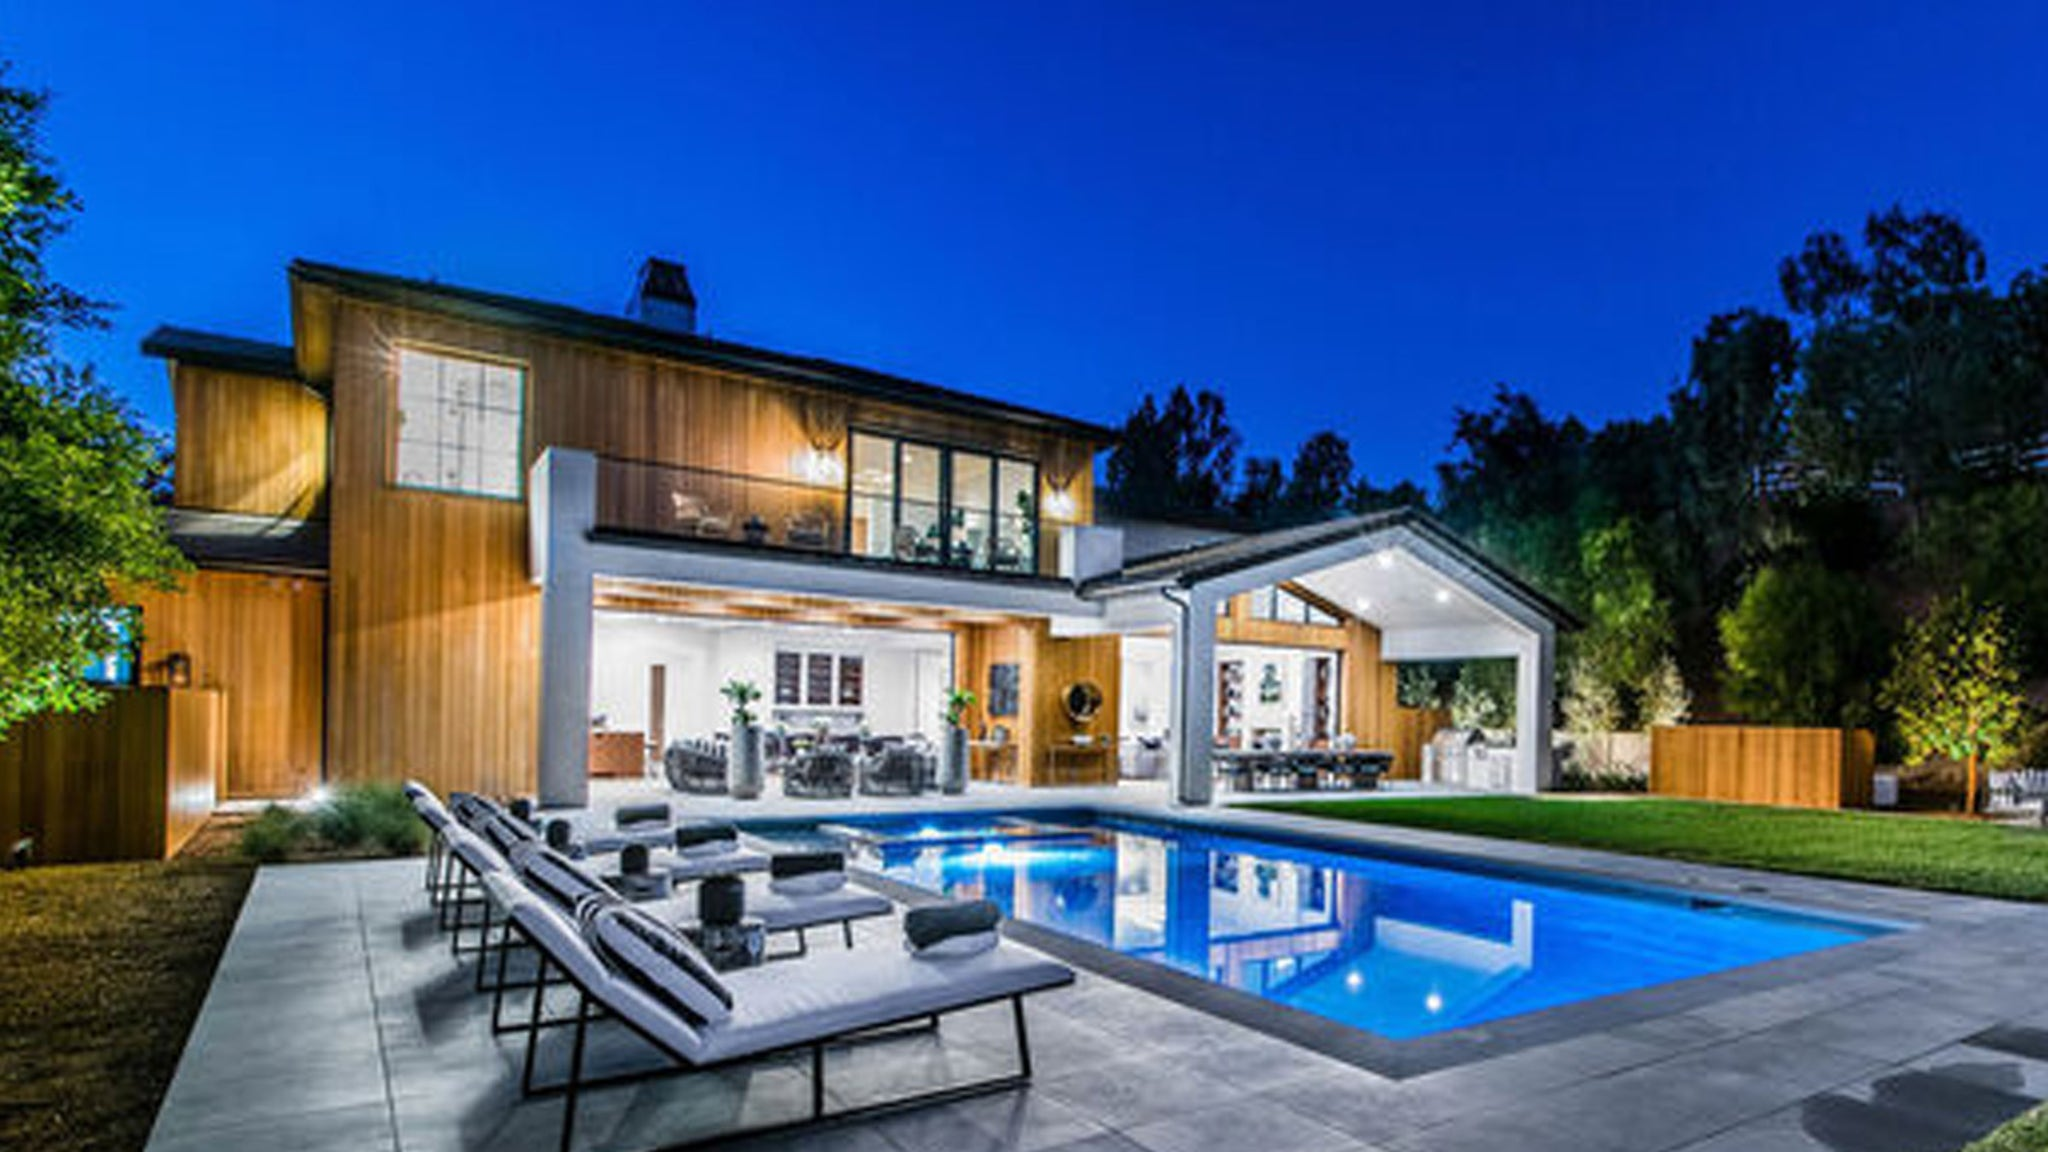 Lori Loughlin, Mossimo Giannulli Drop $9.5M for New Digs ... A Little Downsizing's in Order